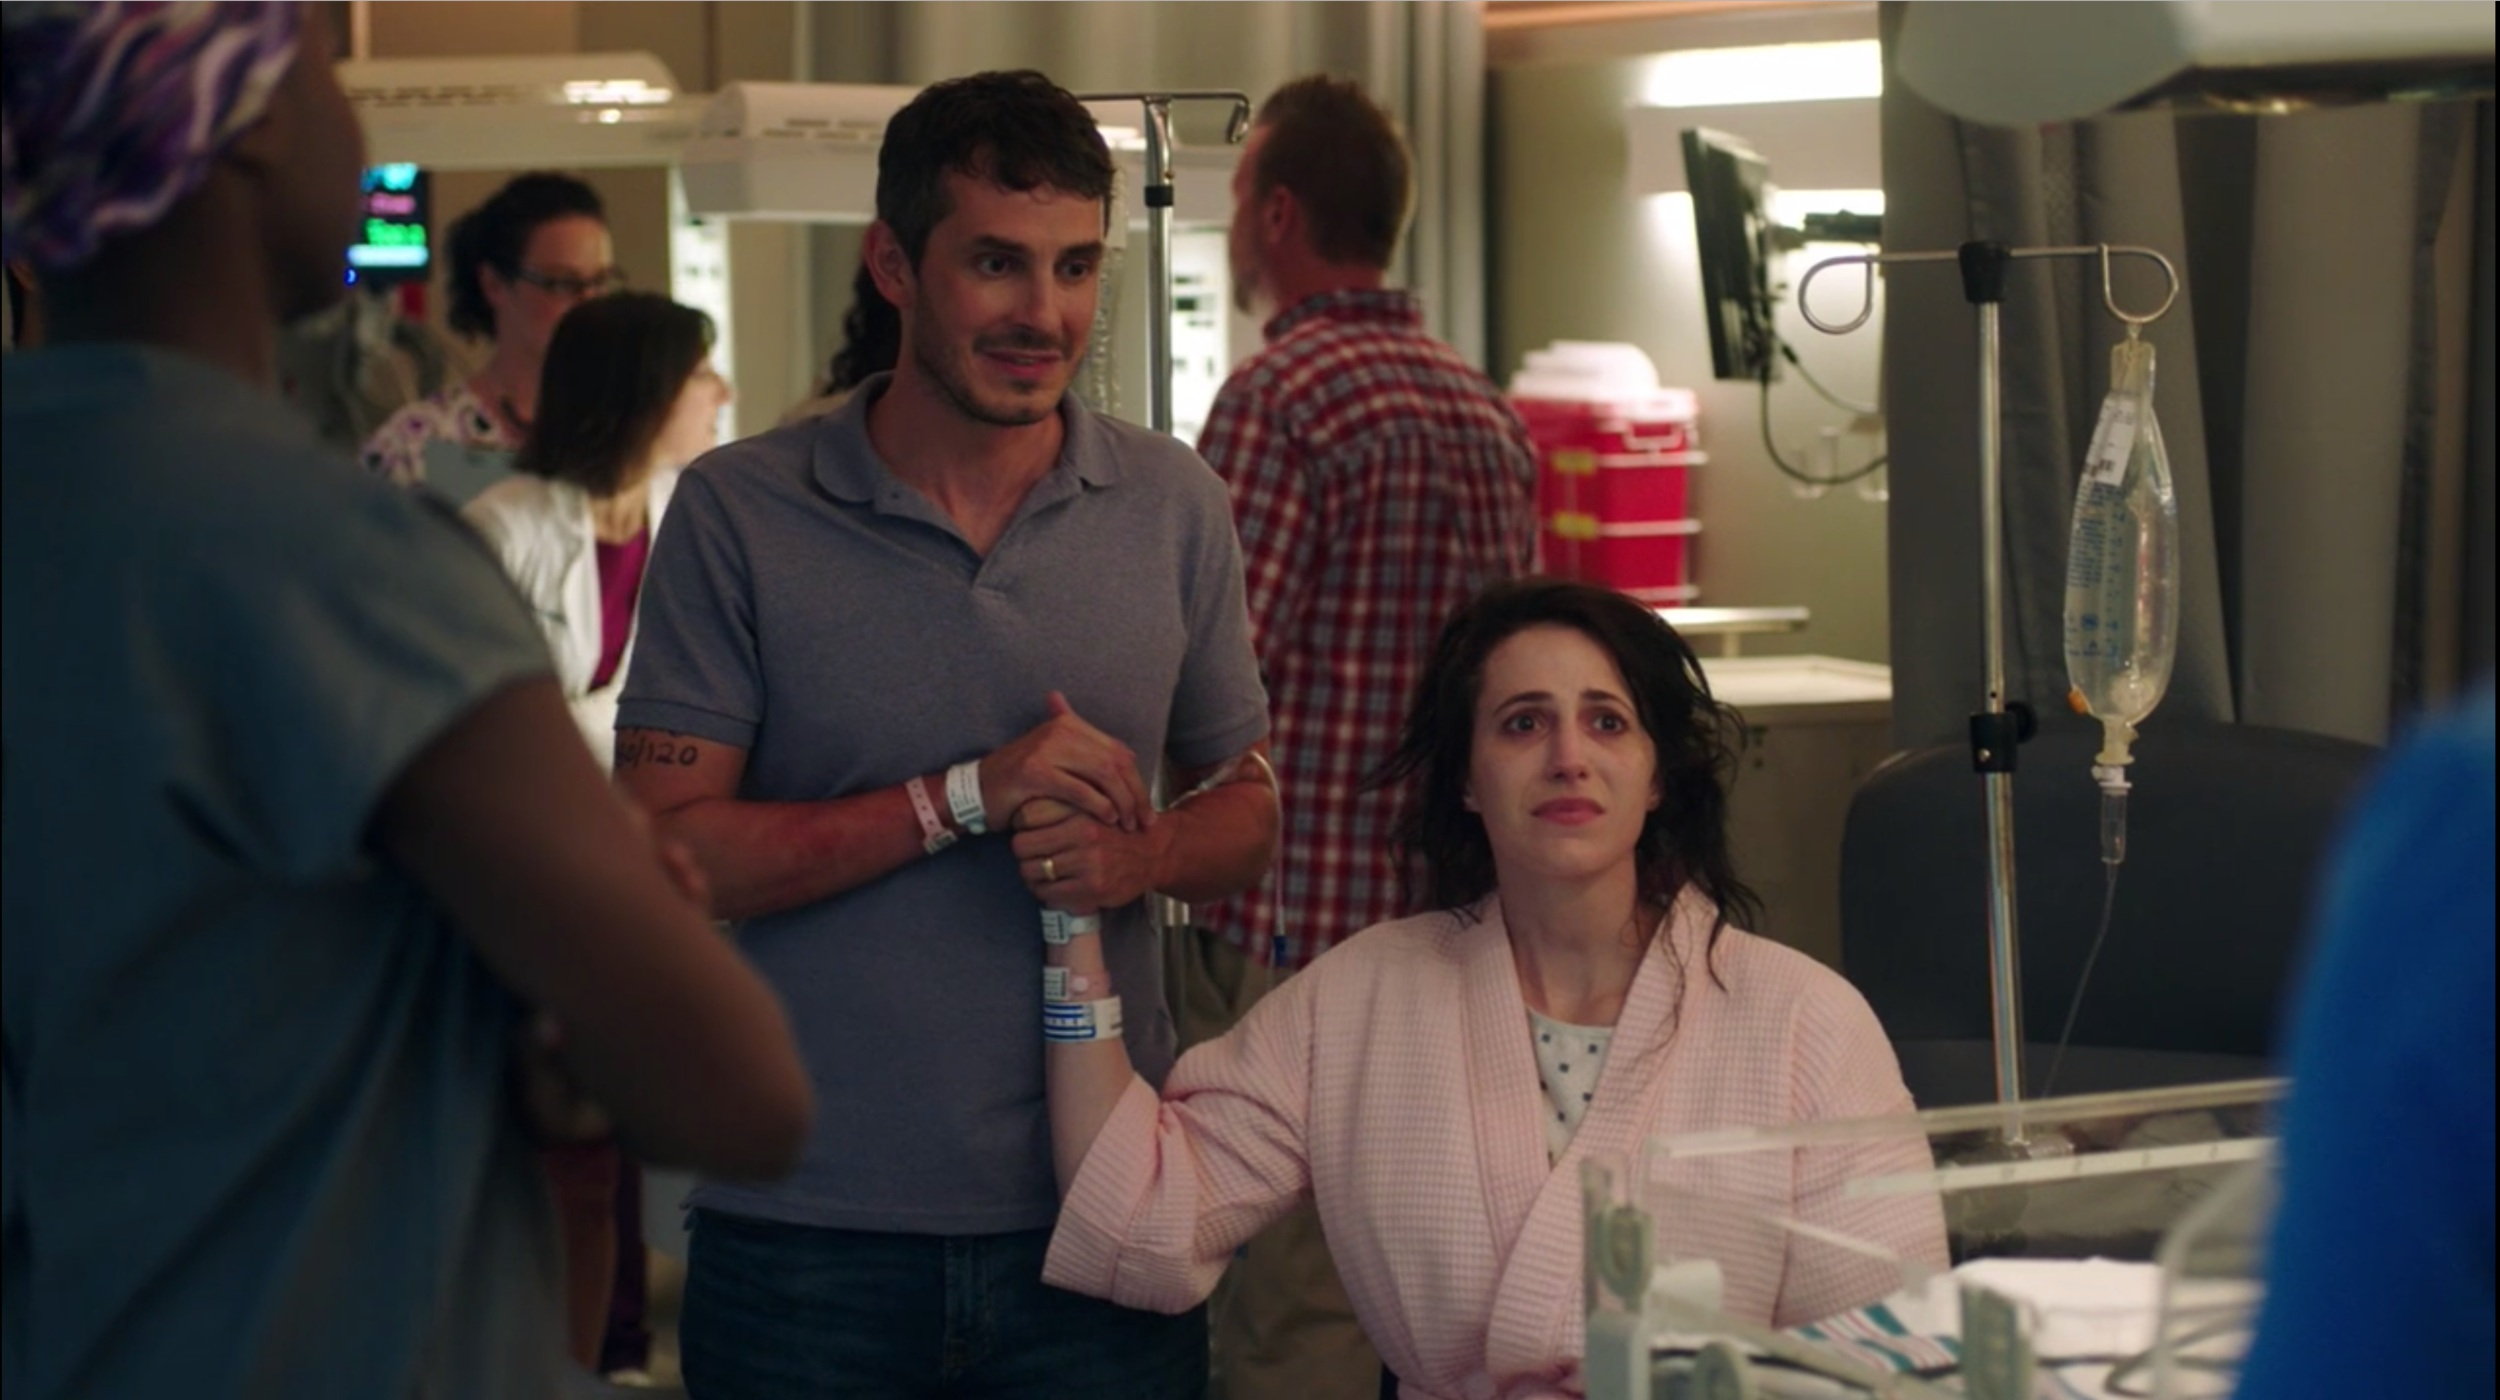 Adrienne_Whitney_Papp_The_ Resident_AdrienneWhitneyPapp_TheResident_S2E1_11.png